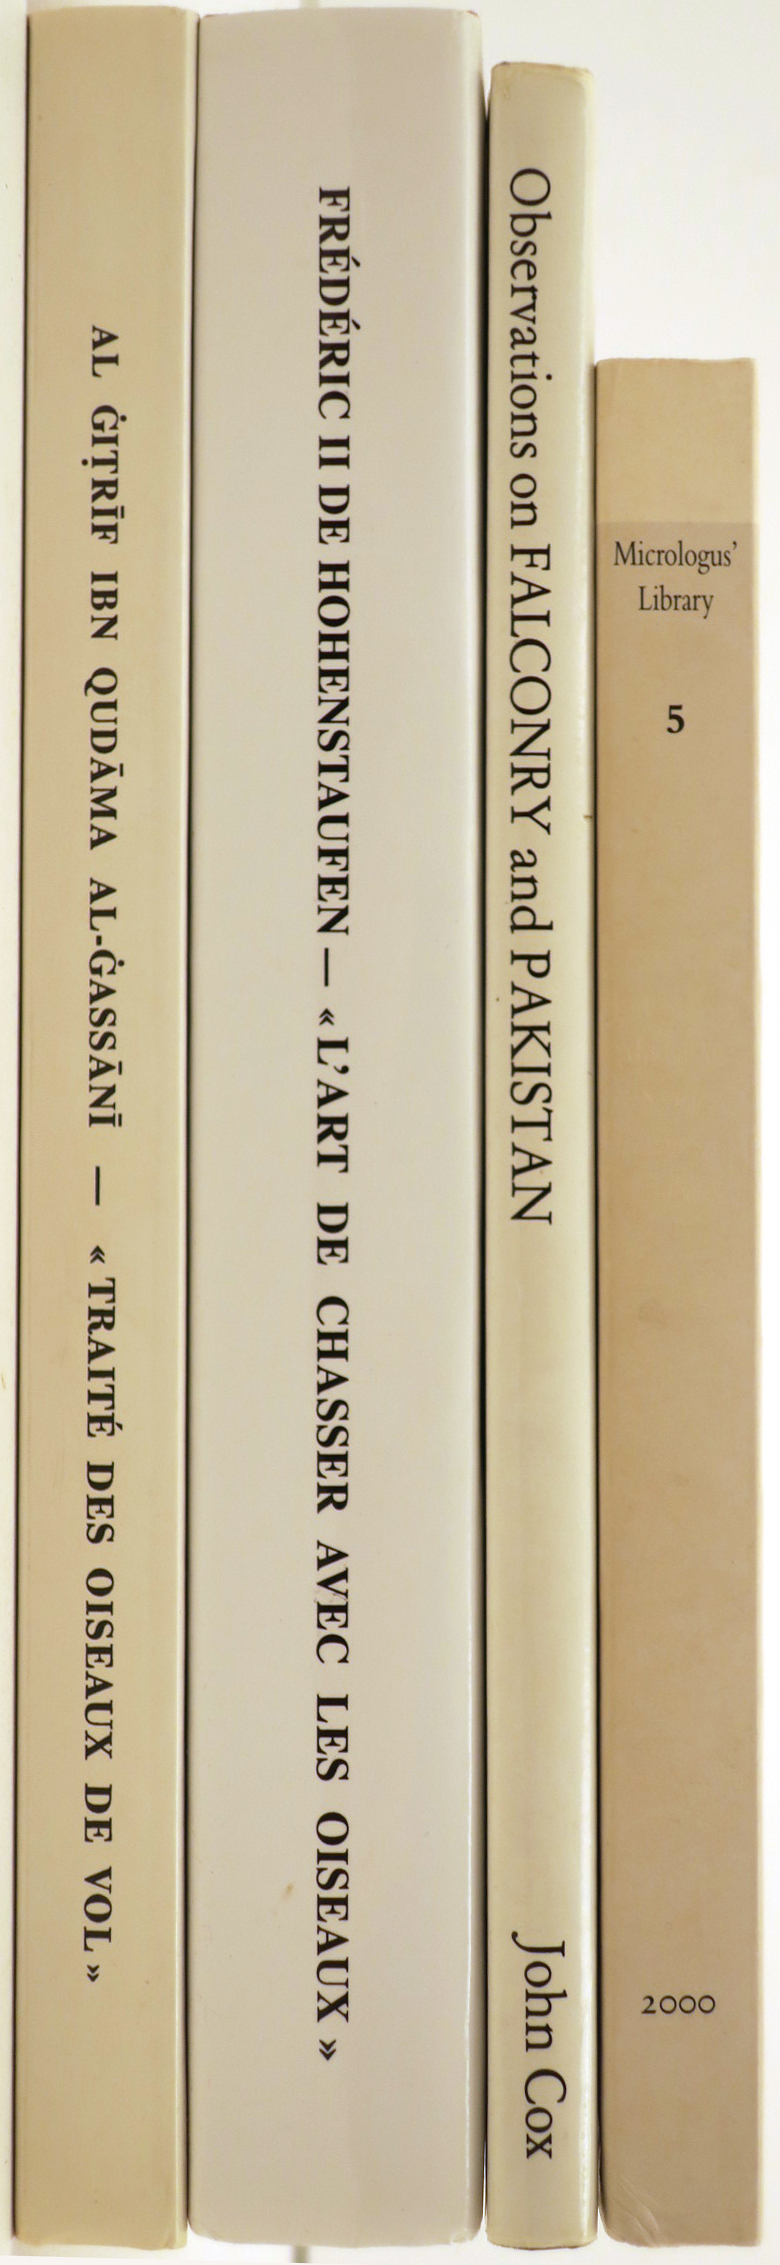 Lot 606 - 11 vol. onfalconry through the ages and across the world. Diff. sizes and present. [...]